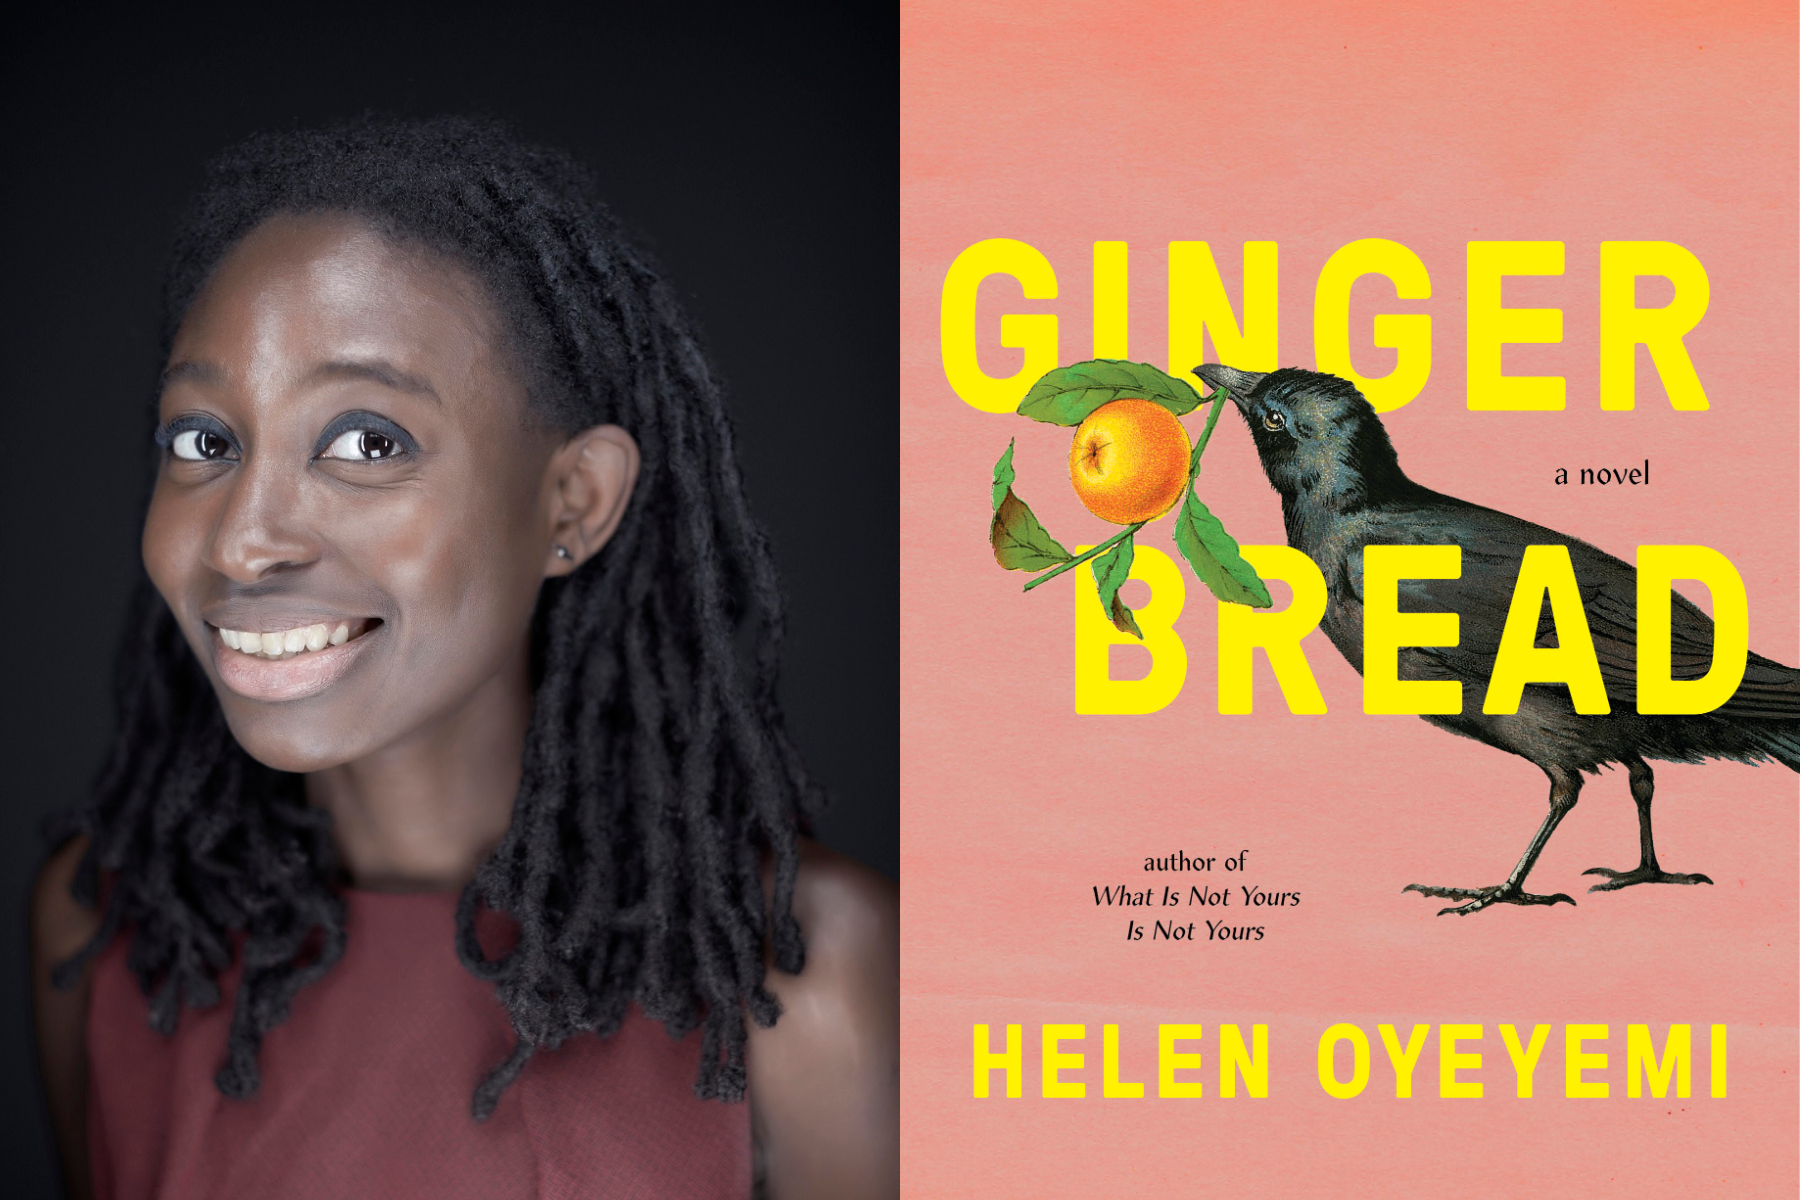 Helen Oyeyemi writes like a feral fairy godmother. Her new book Gingerbread is true to form.